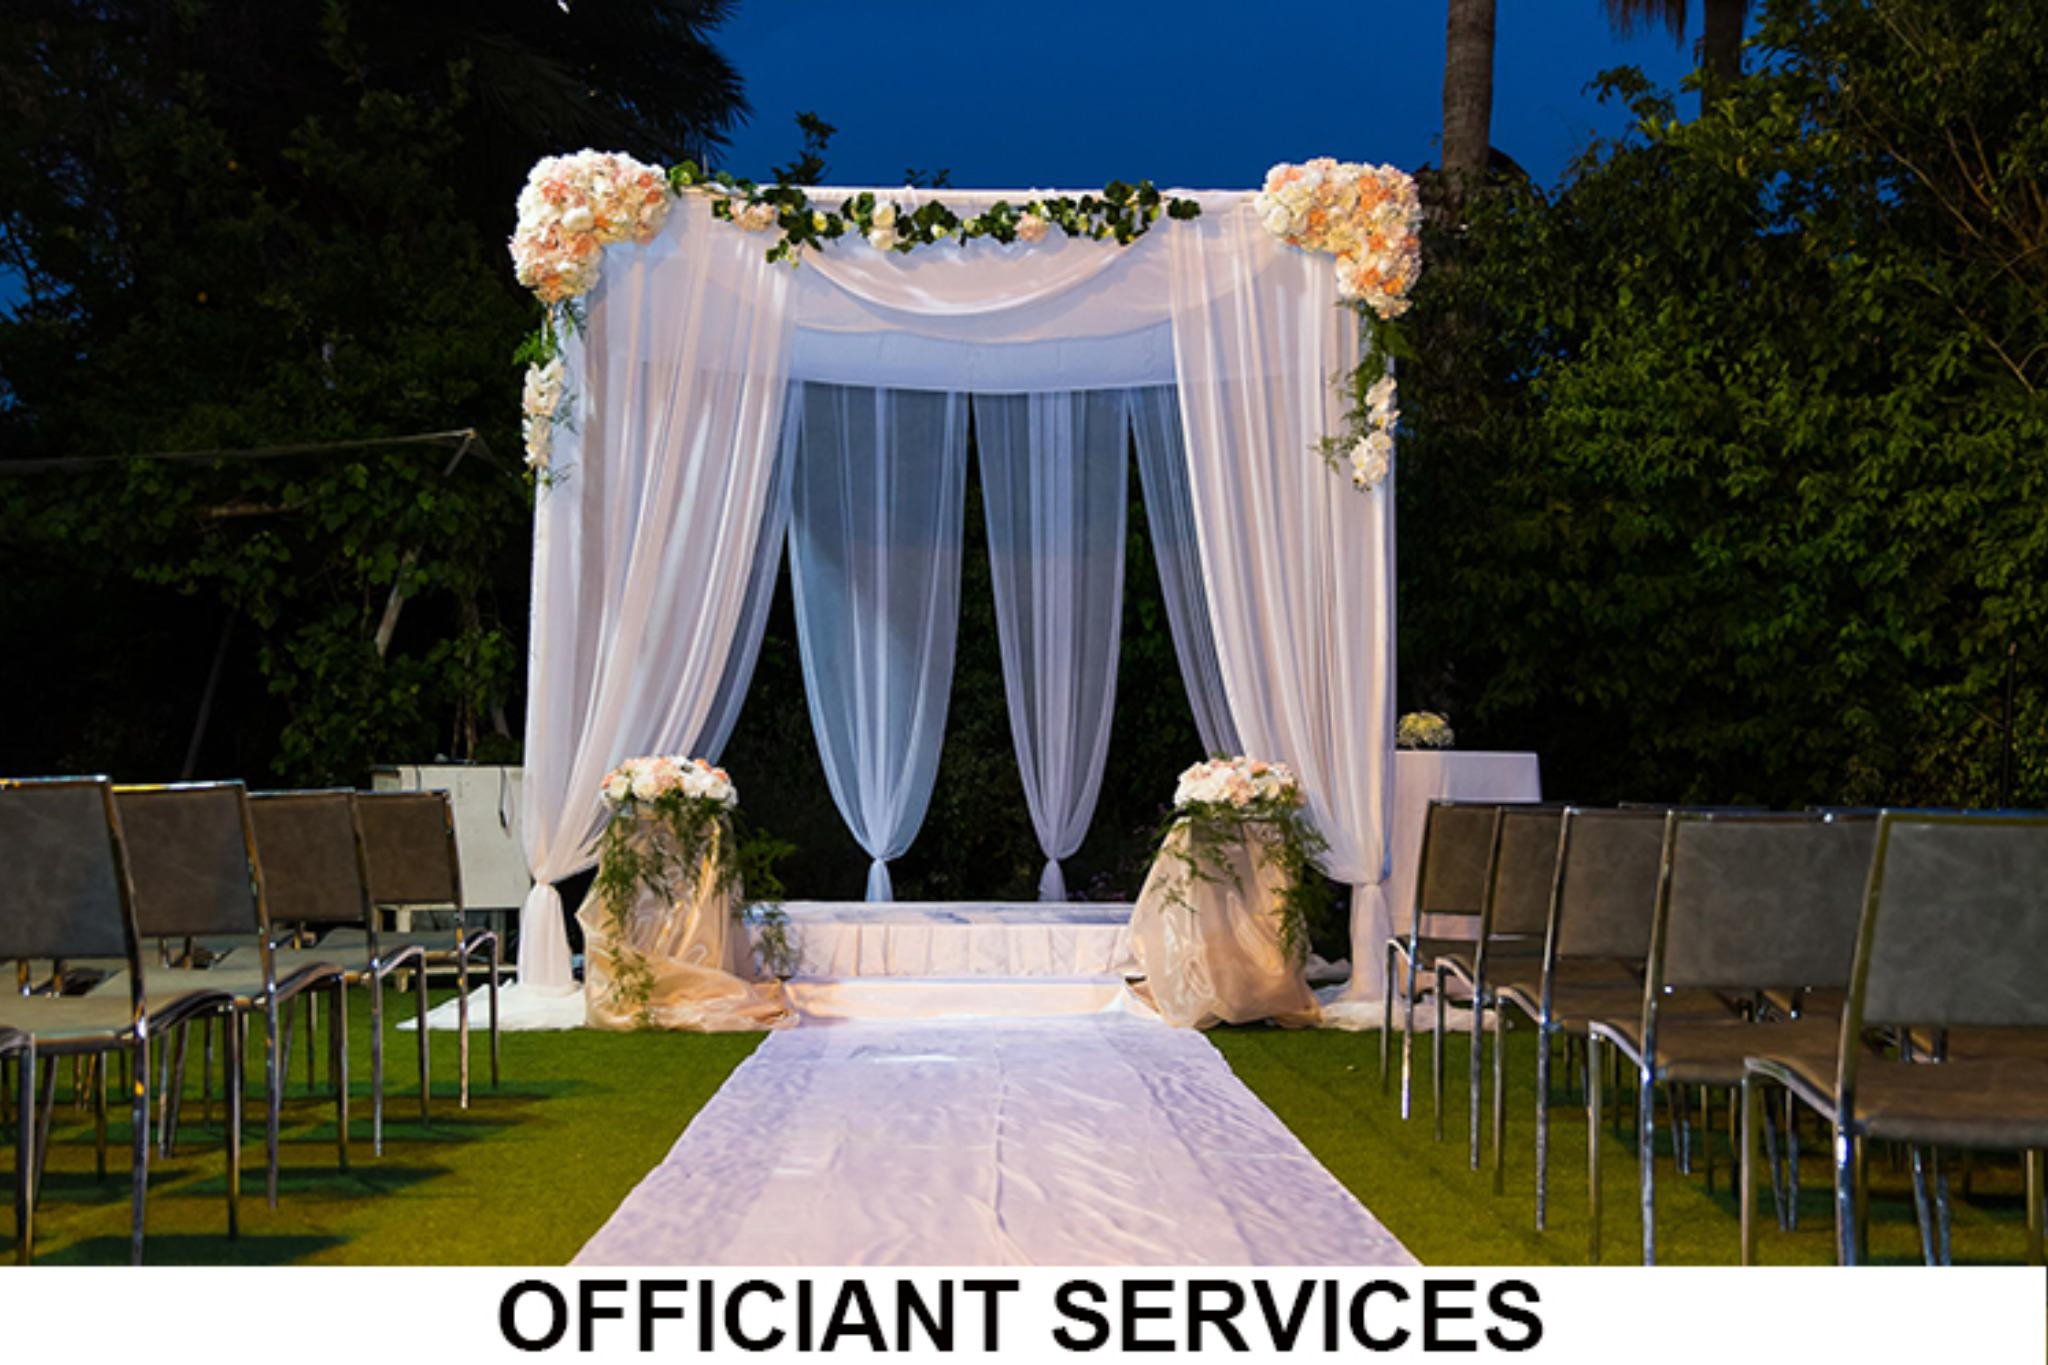 Wedding Officiant, Ceremonial Officiant